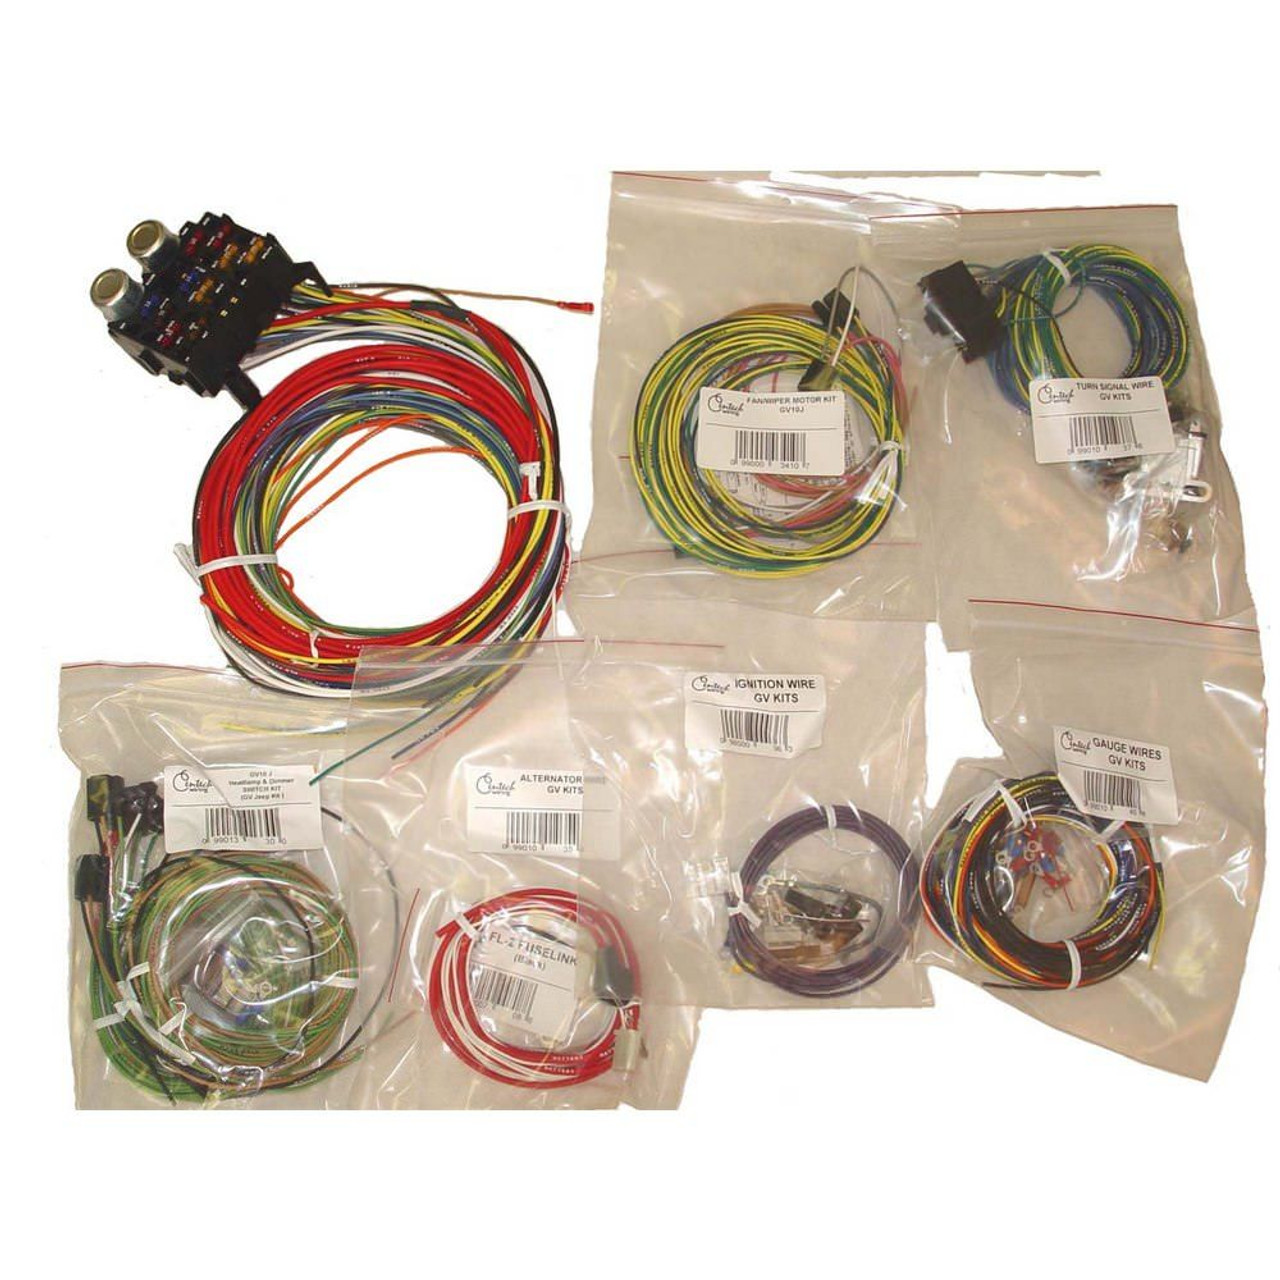 omix-ada, 17203 01 - centech wiring harness 55-86 jeep cj - available at  the jeephut